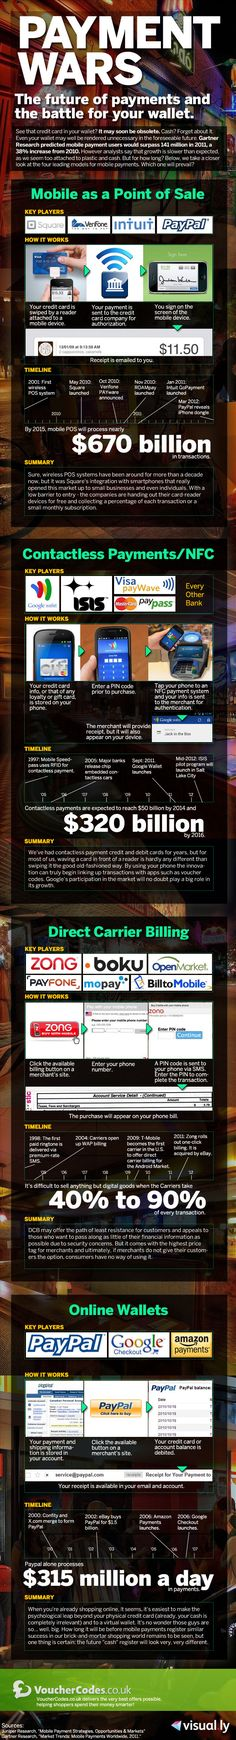 Infographic: Payment Wars - The future of payments and the battle for your wallet. Credit Cards can now be accepted on your mobile phone using mobile apps. Mobile Marketing, Online Marketing, Social Media Marketing, Online Wallet, Software, Information Graphics, Data Visualization, Ecommerce, Tips